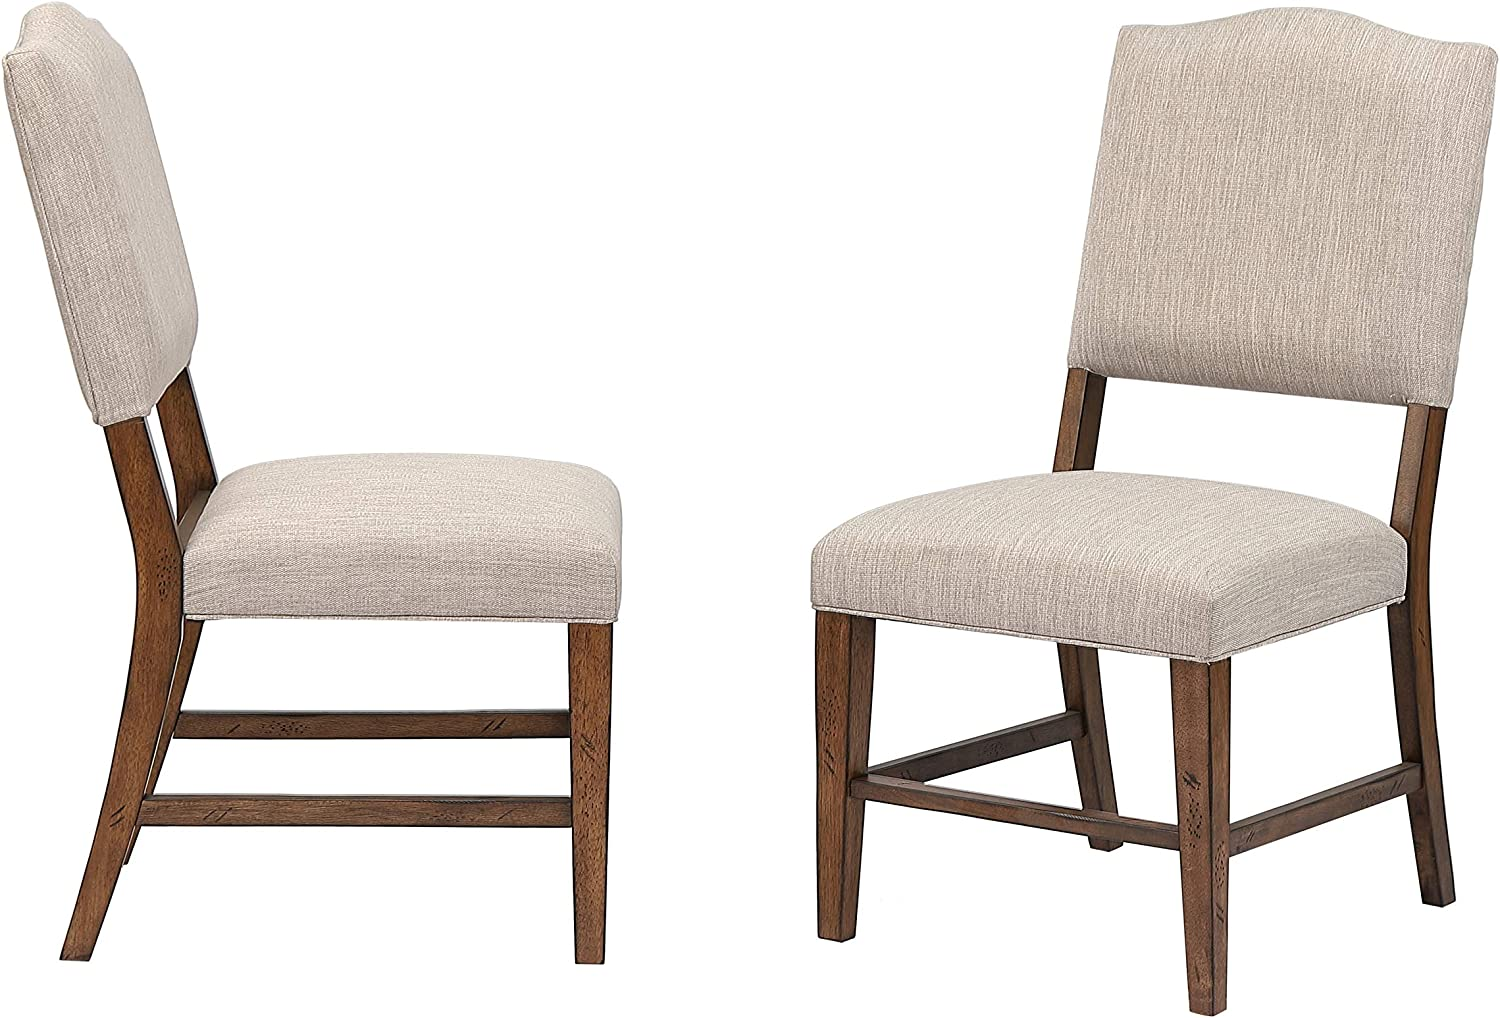 Sunset Trading Simply Brook Upholstered Dining Chair, Amish Brown